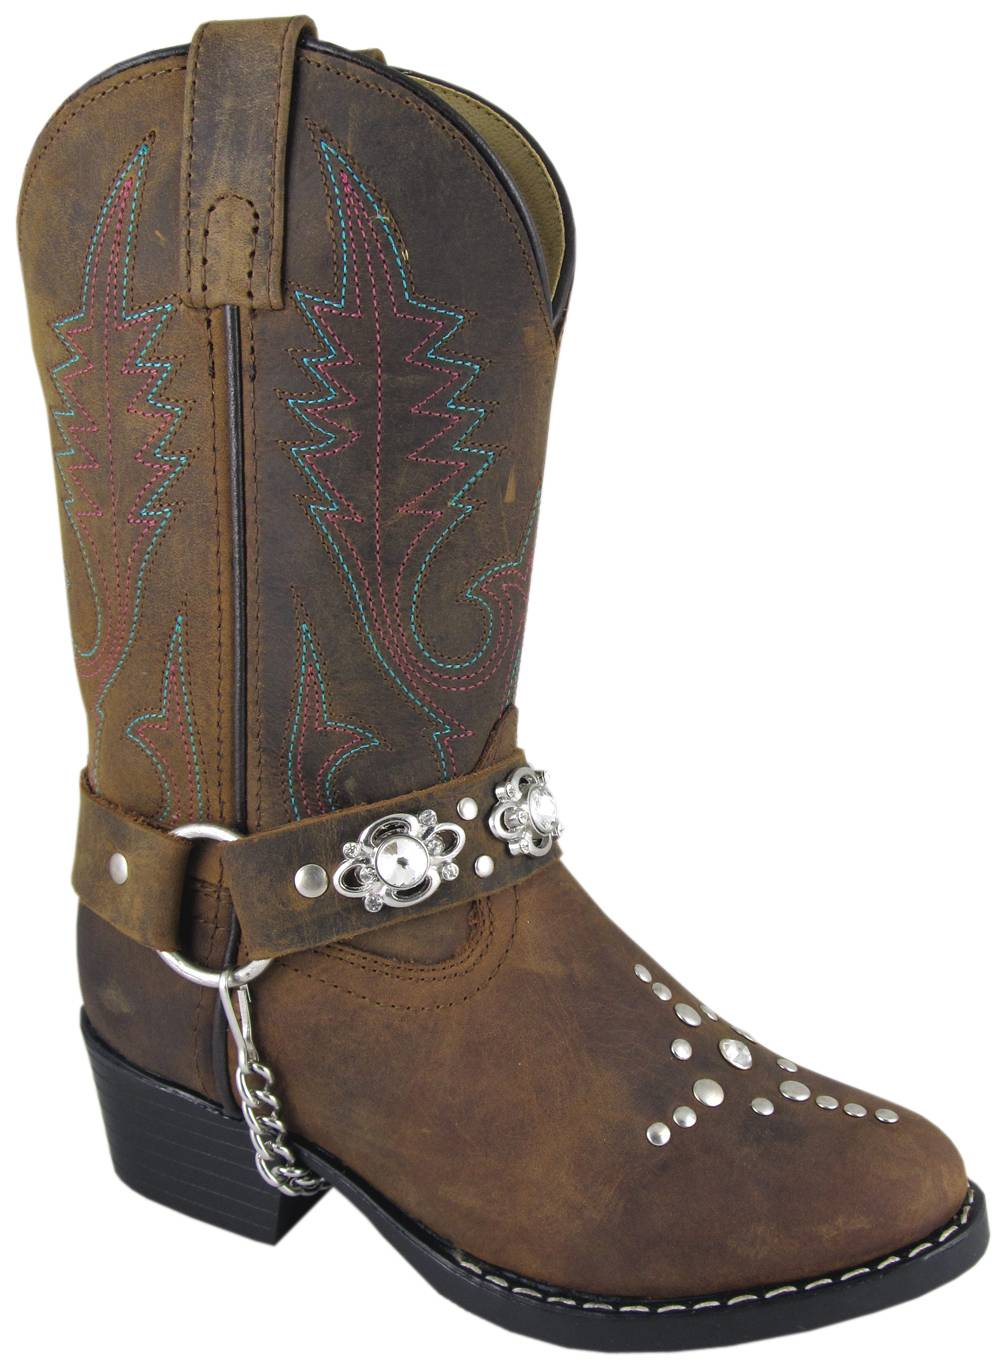 Smoky Mountain Starlight Western Boots - Kids, Black